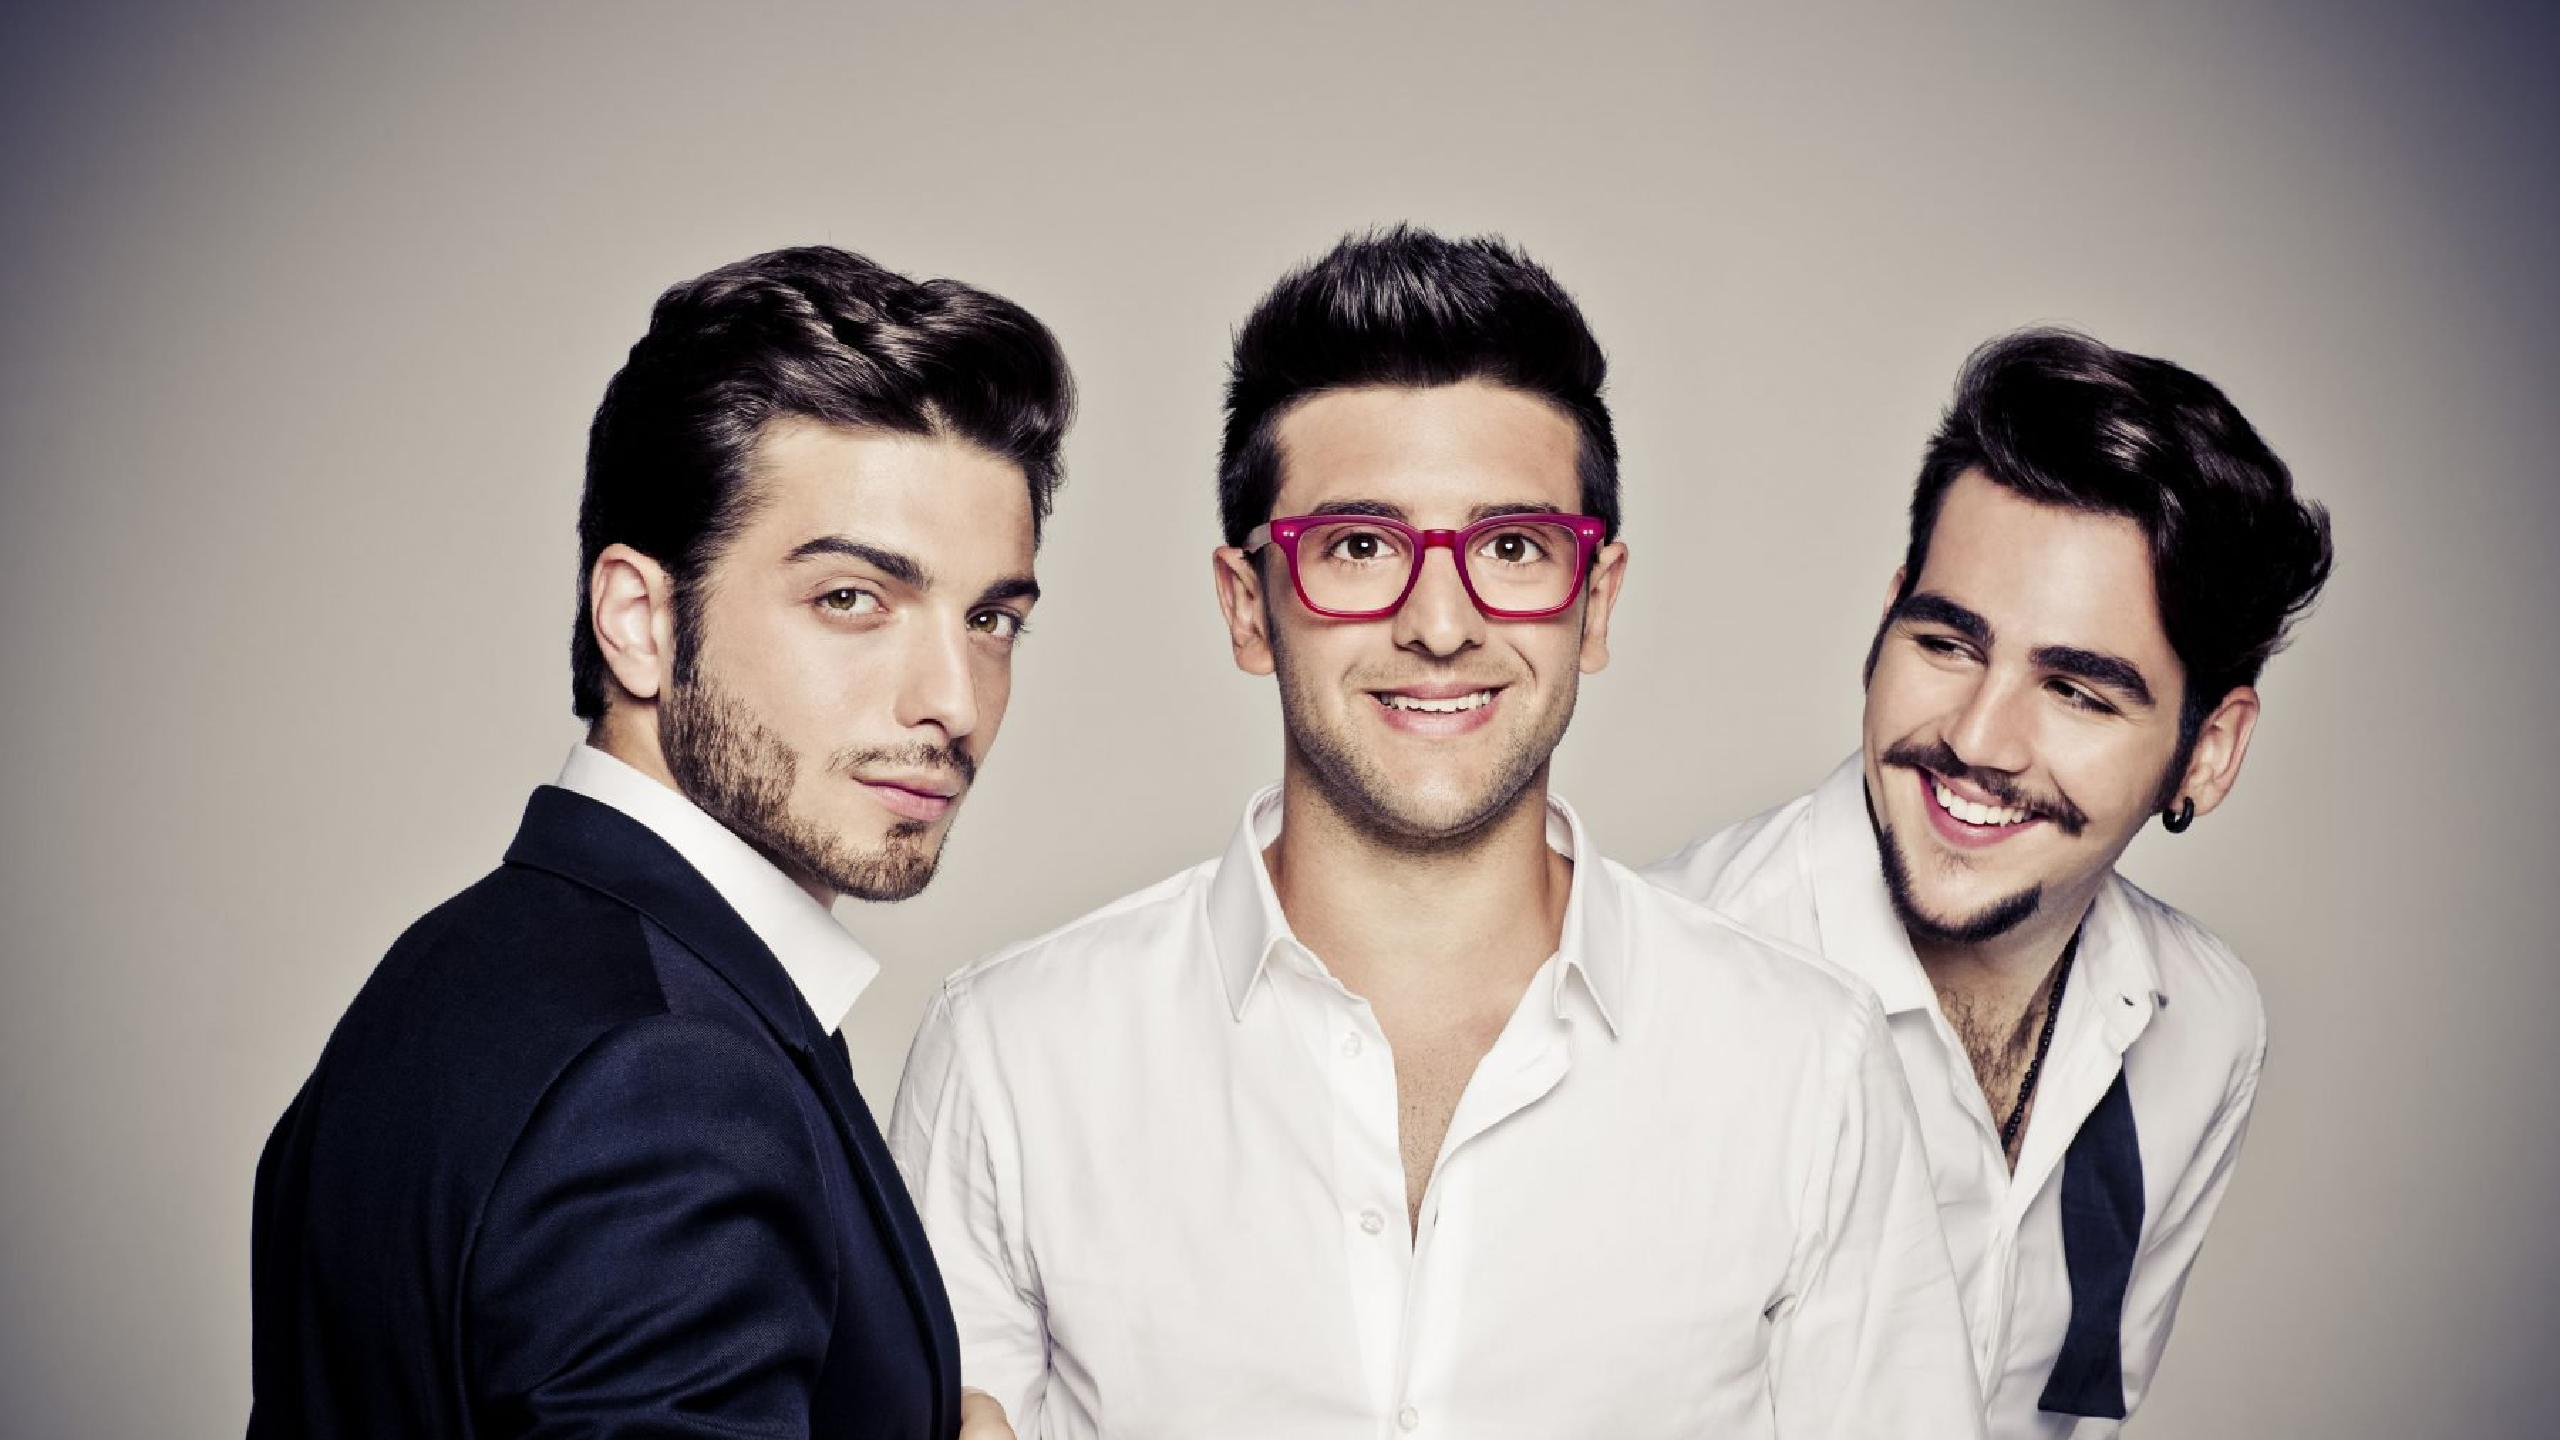 Il Volo Tour 2020.Il Volo Tour Dates 2019 2020 Il Volo Tickets And Concerts